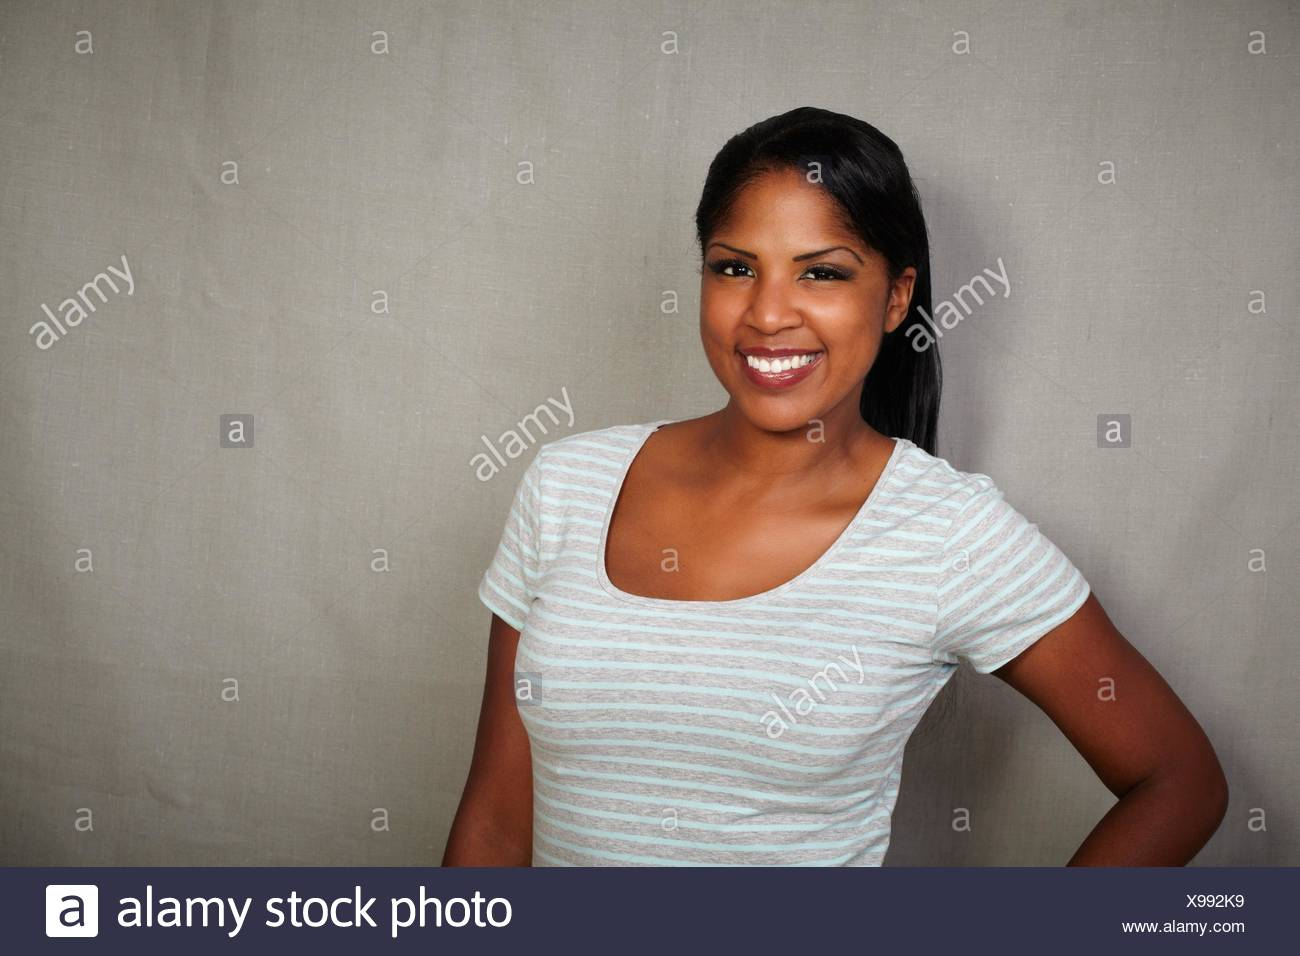 Charismatic girl of african ethnicity standing against grey background - copy space. - Stock Image